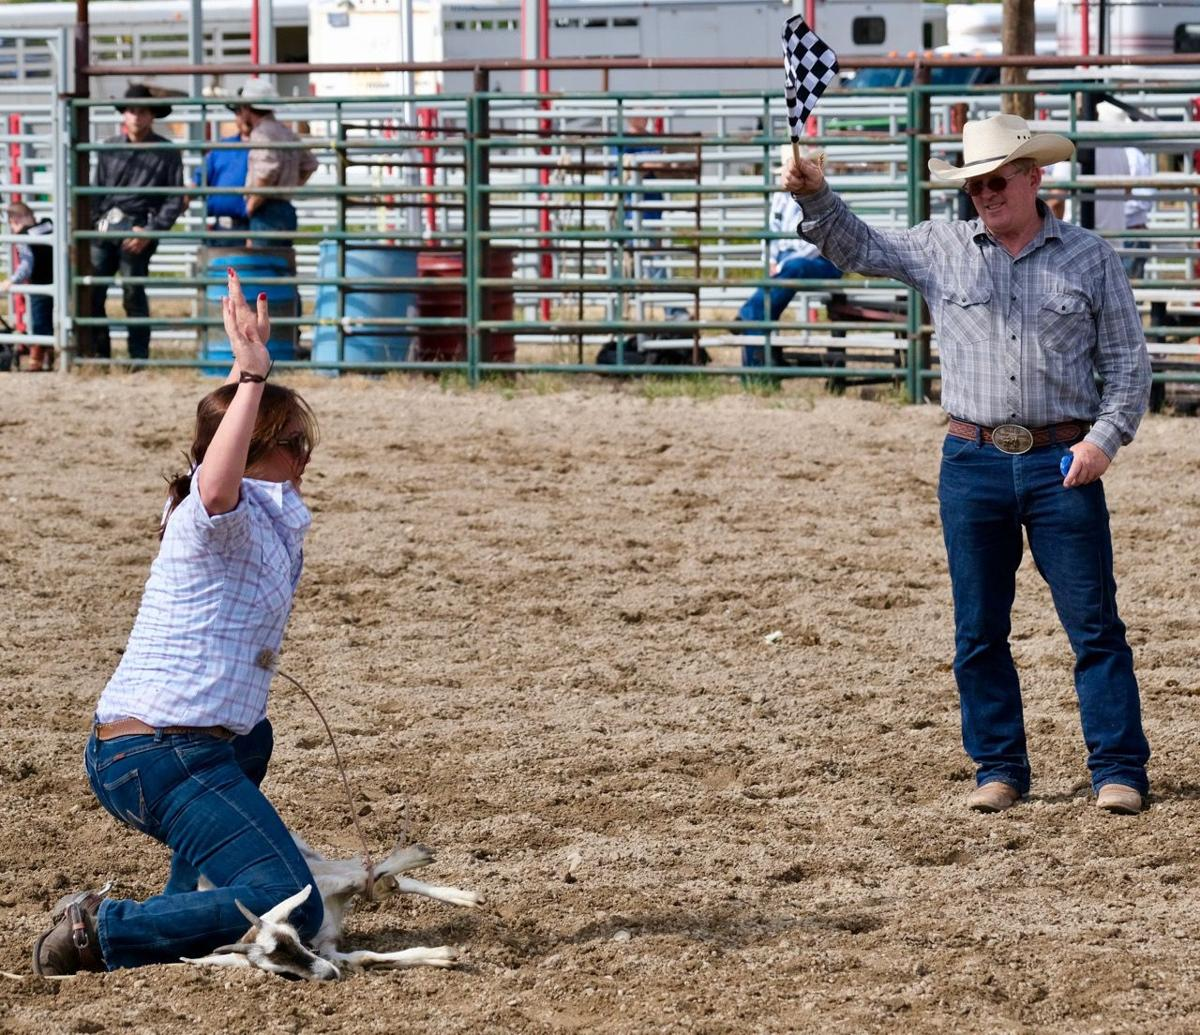 082819 Jefferson County Fair and Rodeo goat roping.jpg